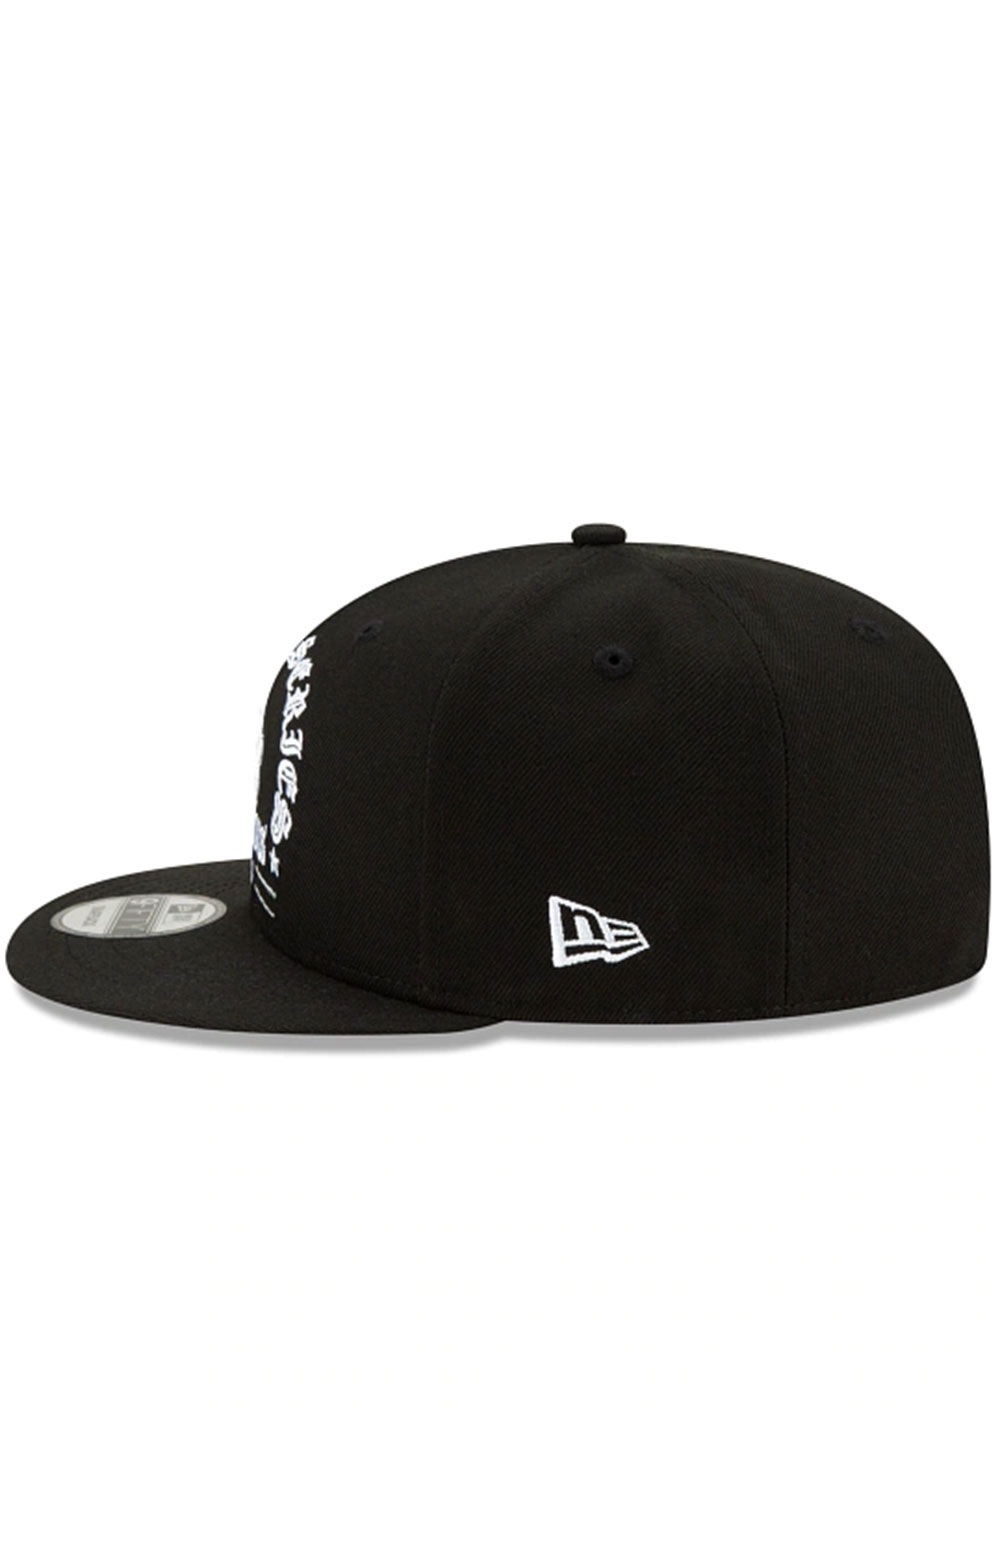 Los Angeles Dodgers 2020 World Series Champions 9FIFTY Snap-Back Hat - Black 5